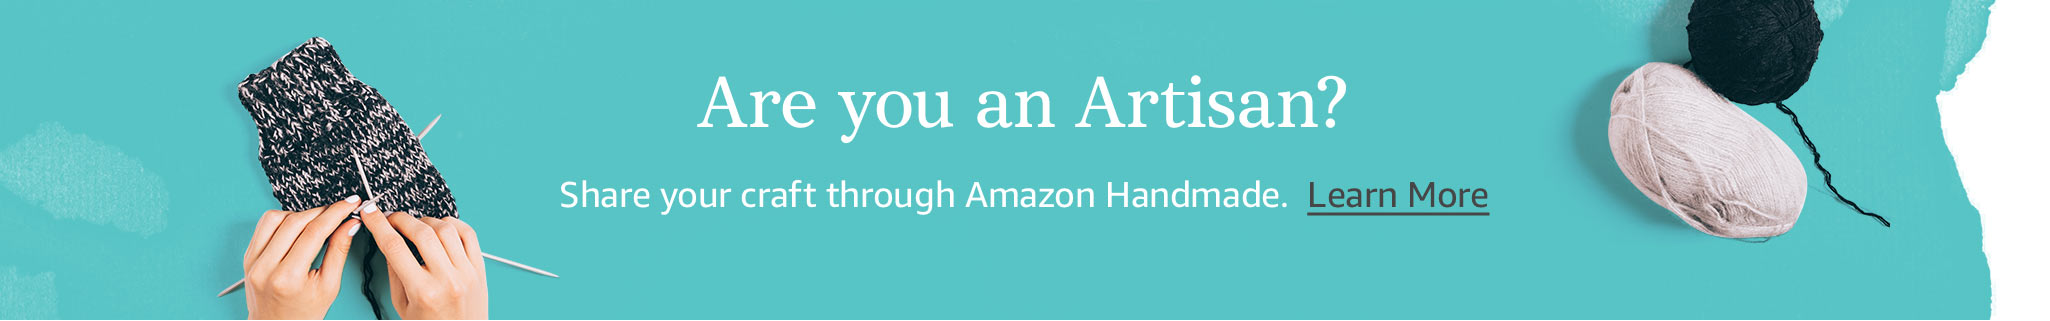 Are you an Artisan? Learn more about how to sell on Handmade